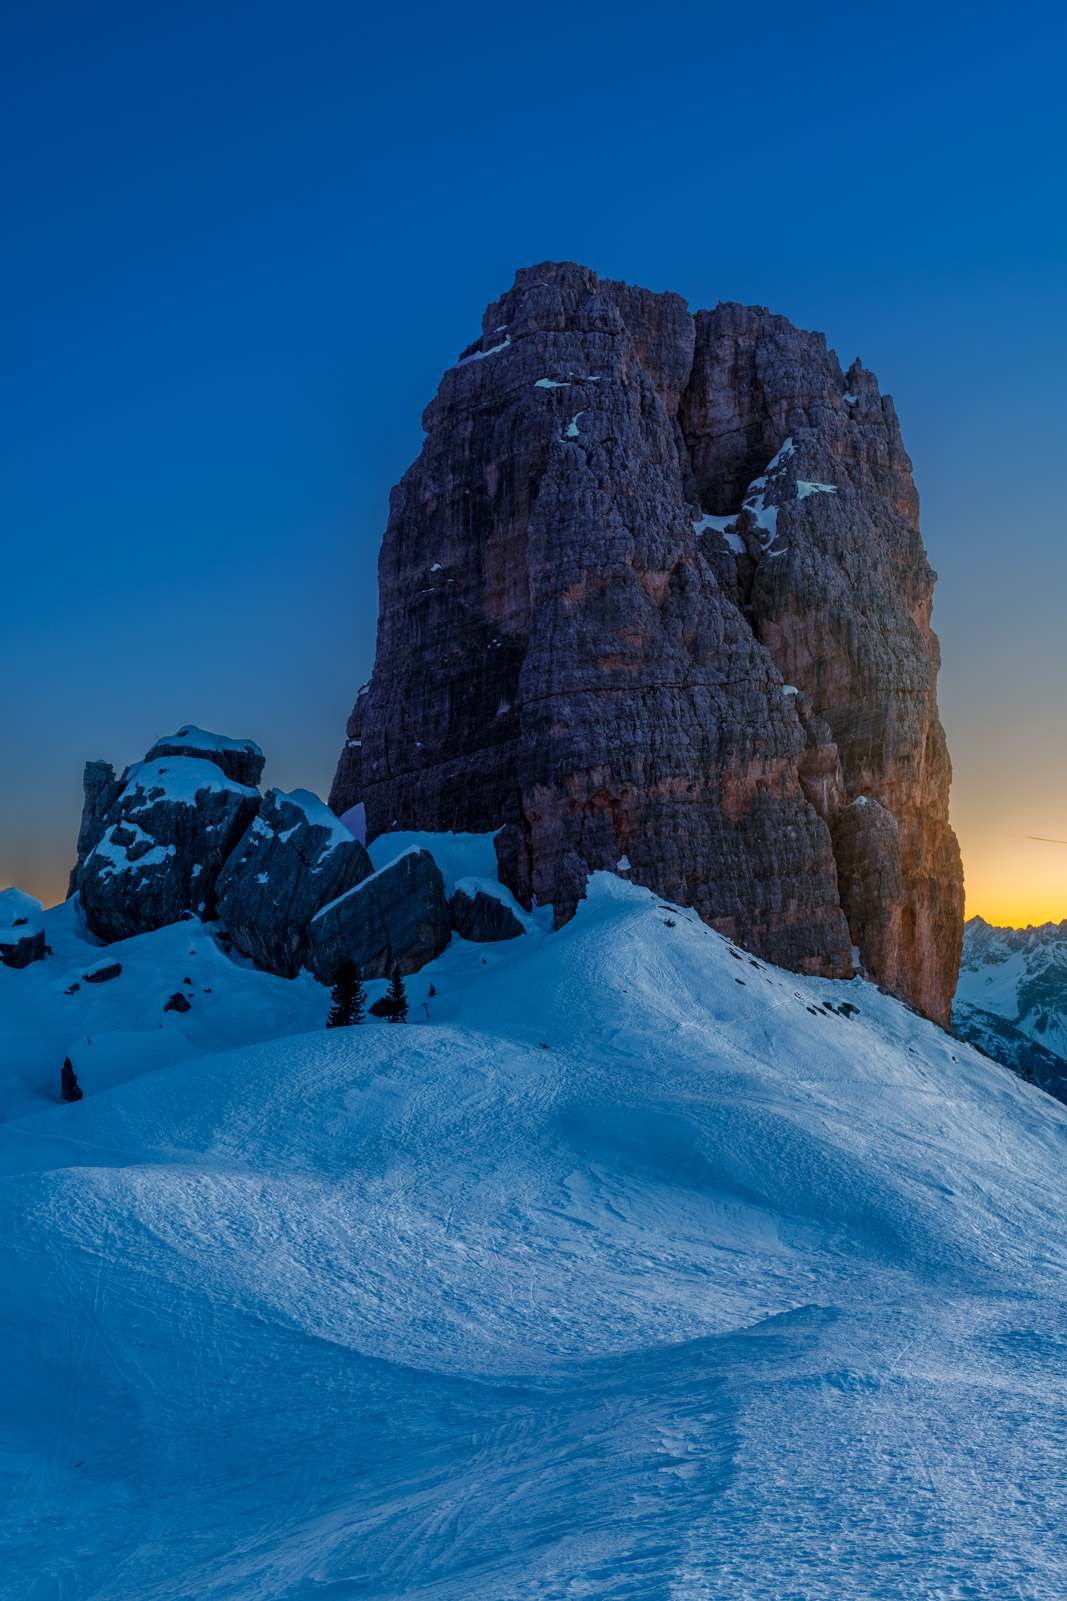 Italy, Mountains, Dolomites, Sunrise, Rock, Formations, limited edition, photograph, photo